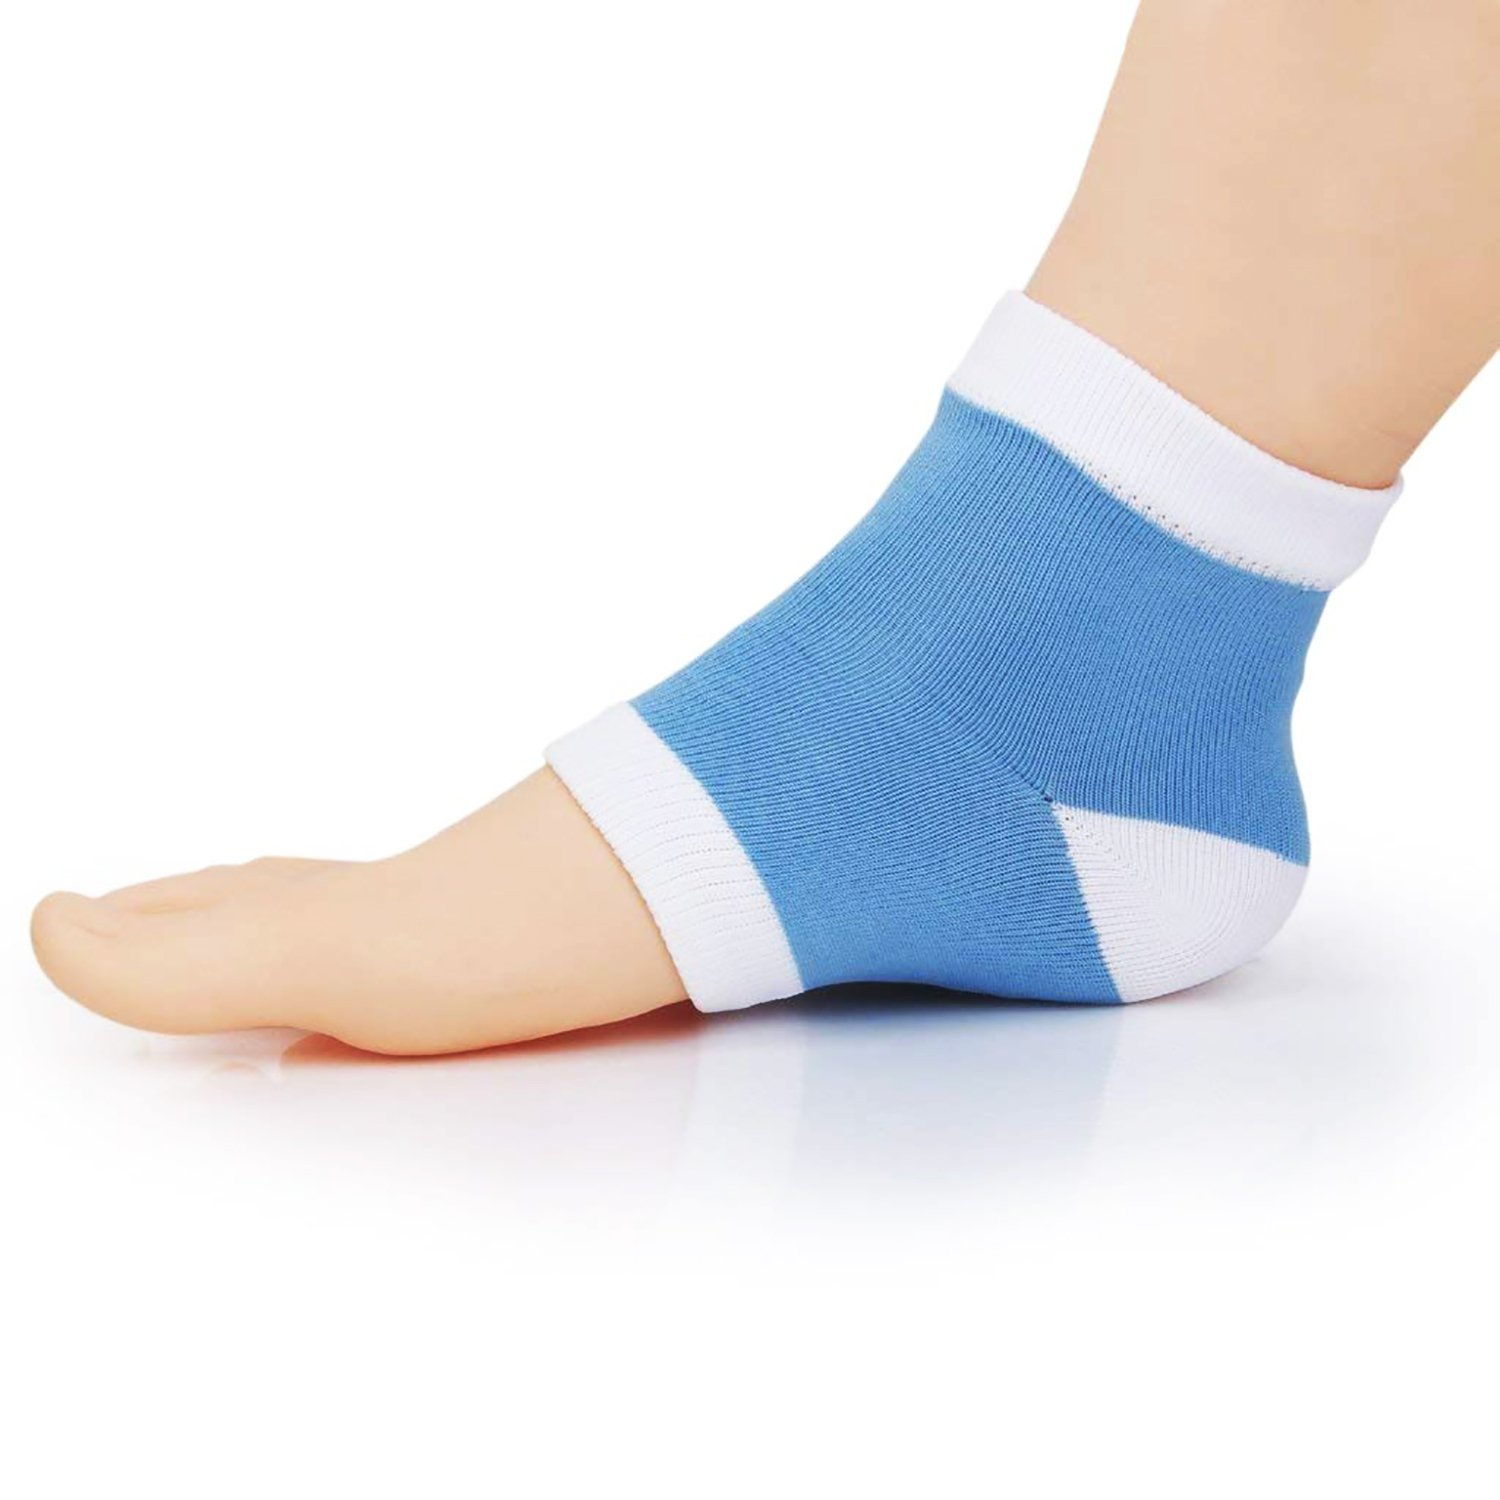 Cracked Heel Treatment - Heel Socks - Cracked Heels - Gel Socks - Moisturizing Socks - Callus Feet - 2 Pairs - Ballotte by Ballotte (Image #1)